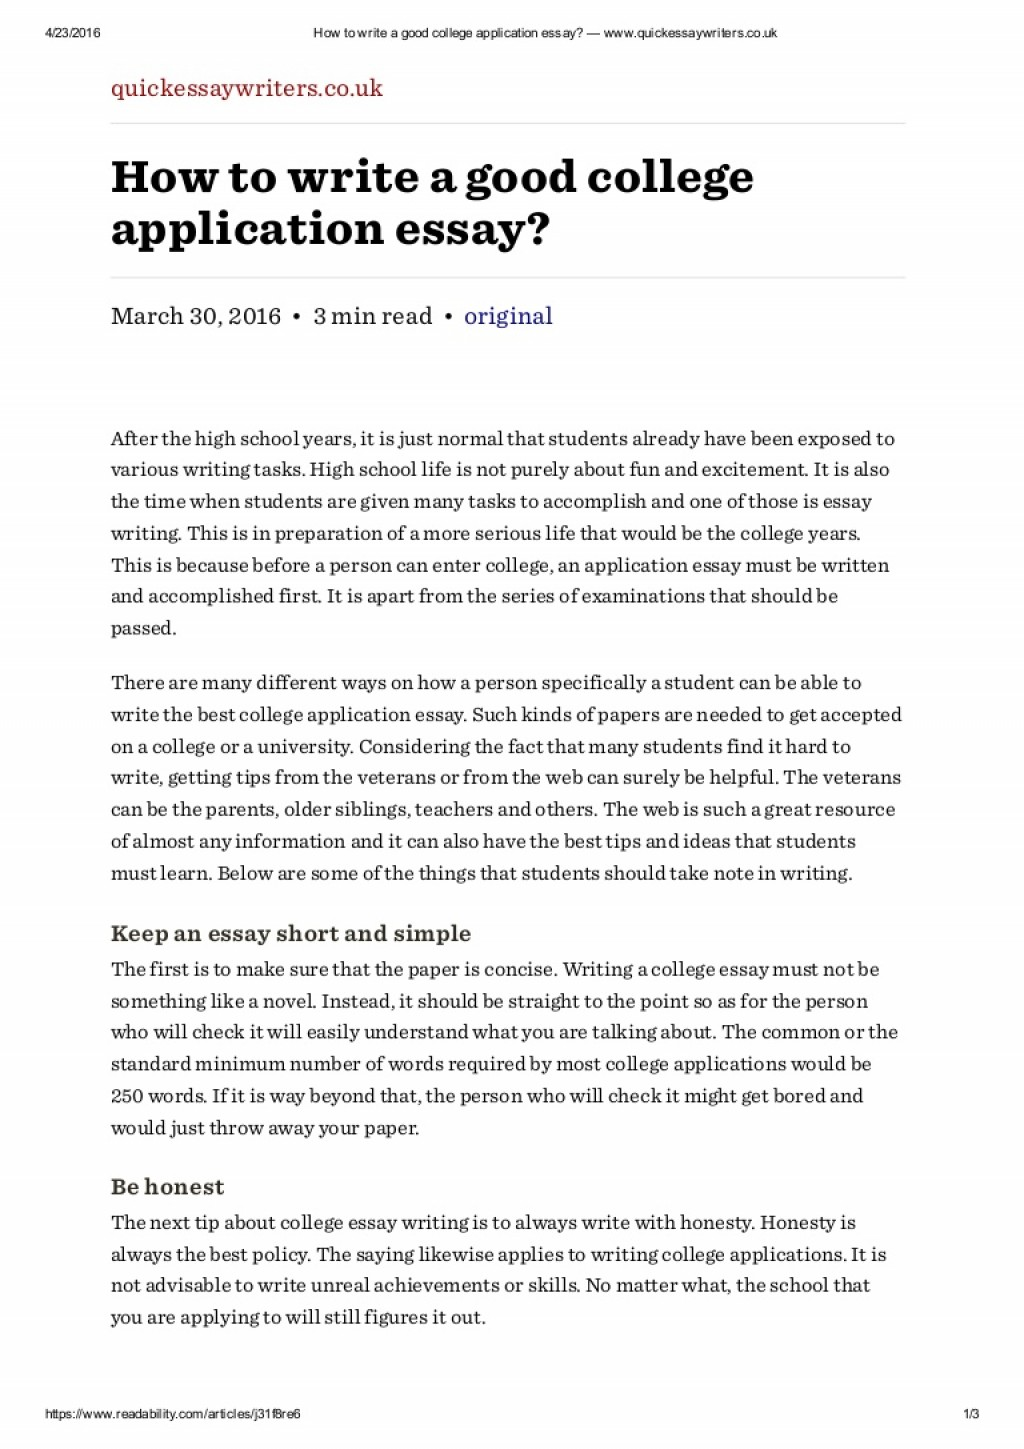 006 How To Write Good College Application Essay Www Best Essaysford Howtowriteagoodcollegeapplicationessaywww Thumbn Ever Ucla Examples Harvard Funny Example Shocking Stanford Essays 2019 That Worked Mba Large